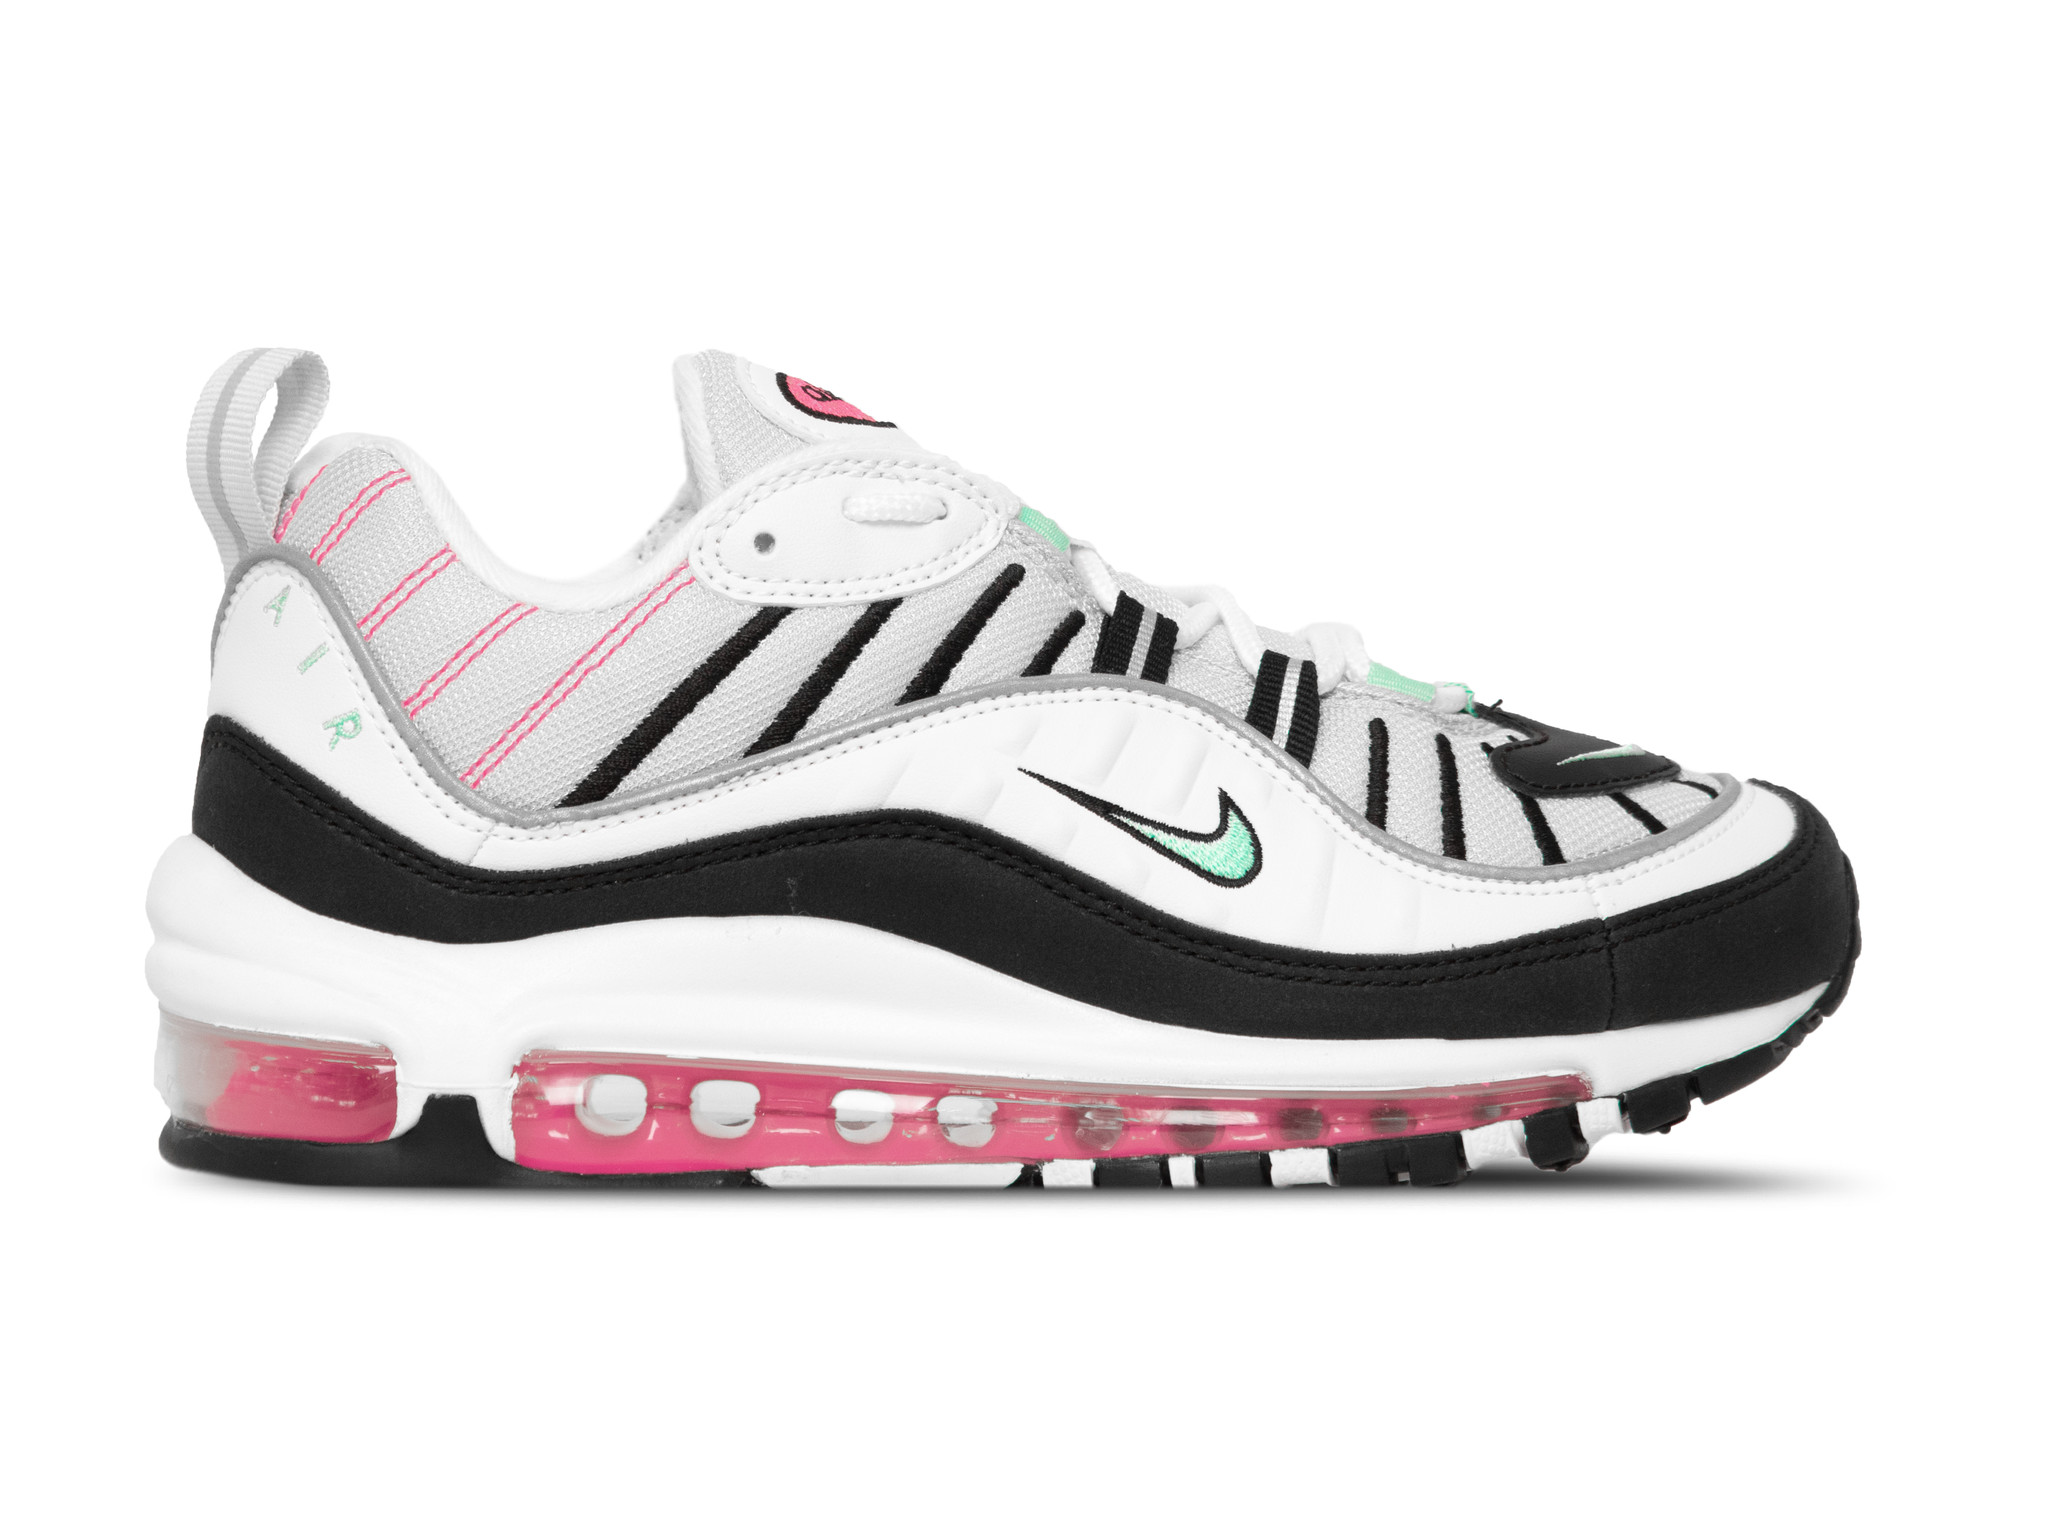 W Air Max 98 Pure Platinum Aurora Green Black AH6799 065